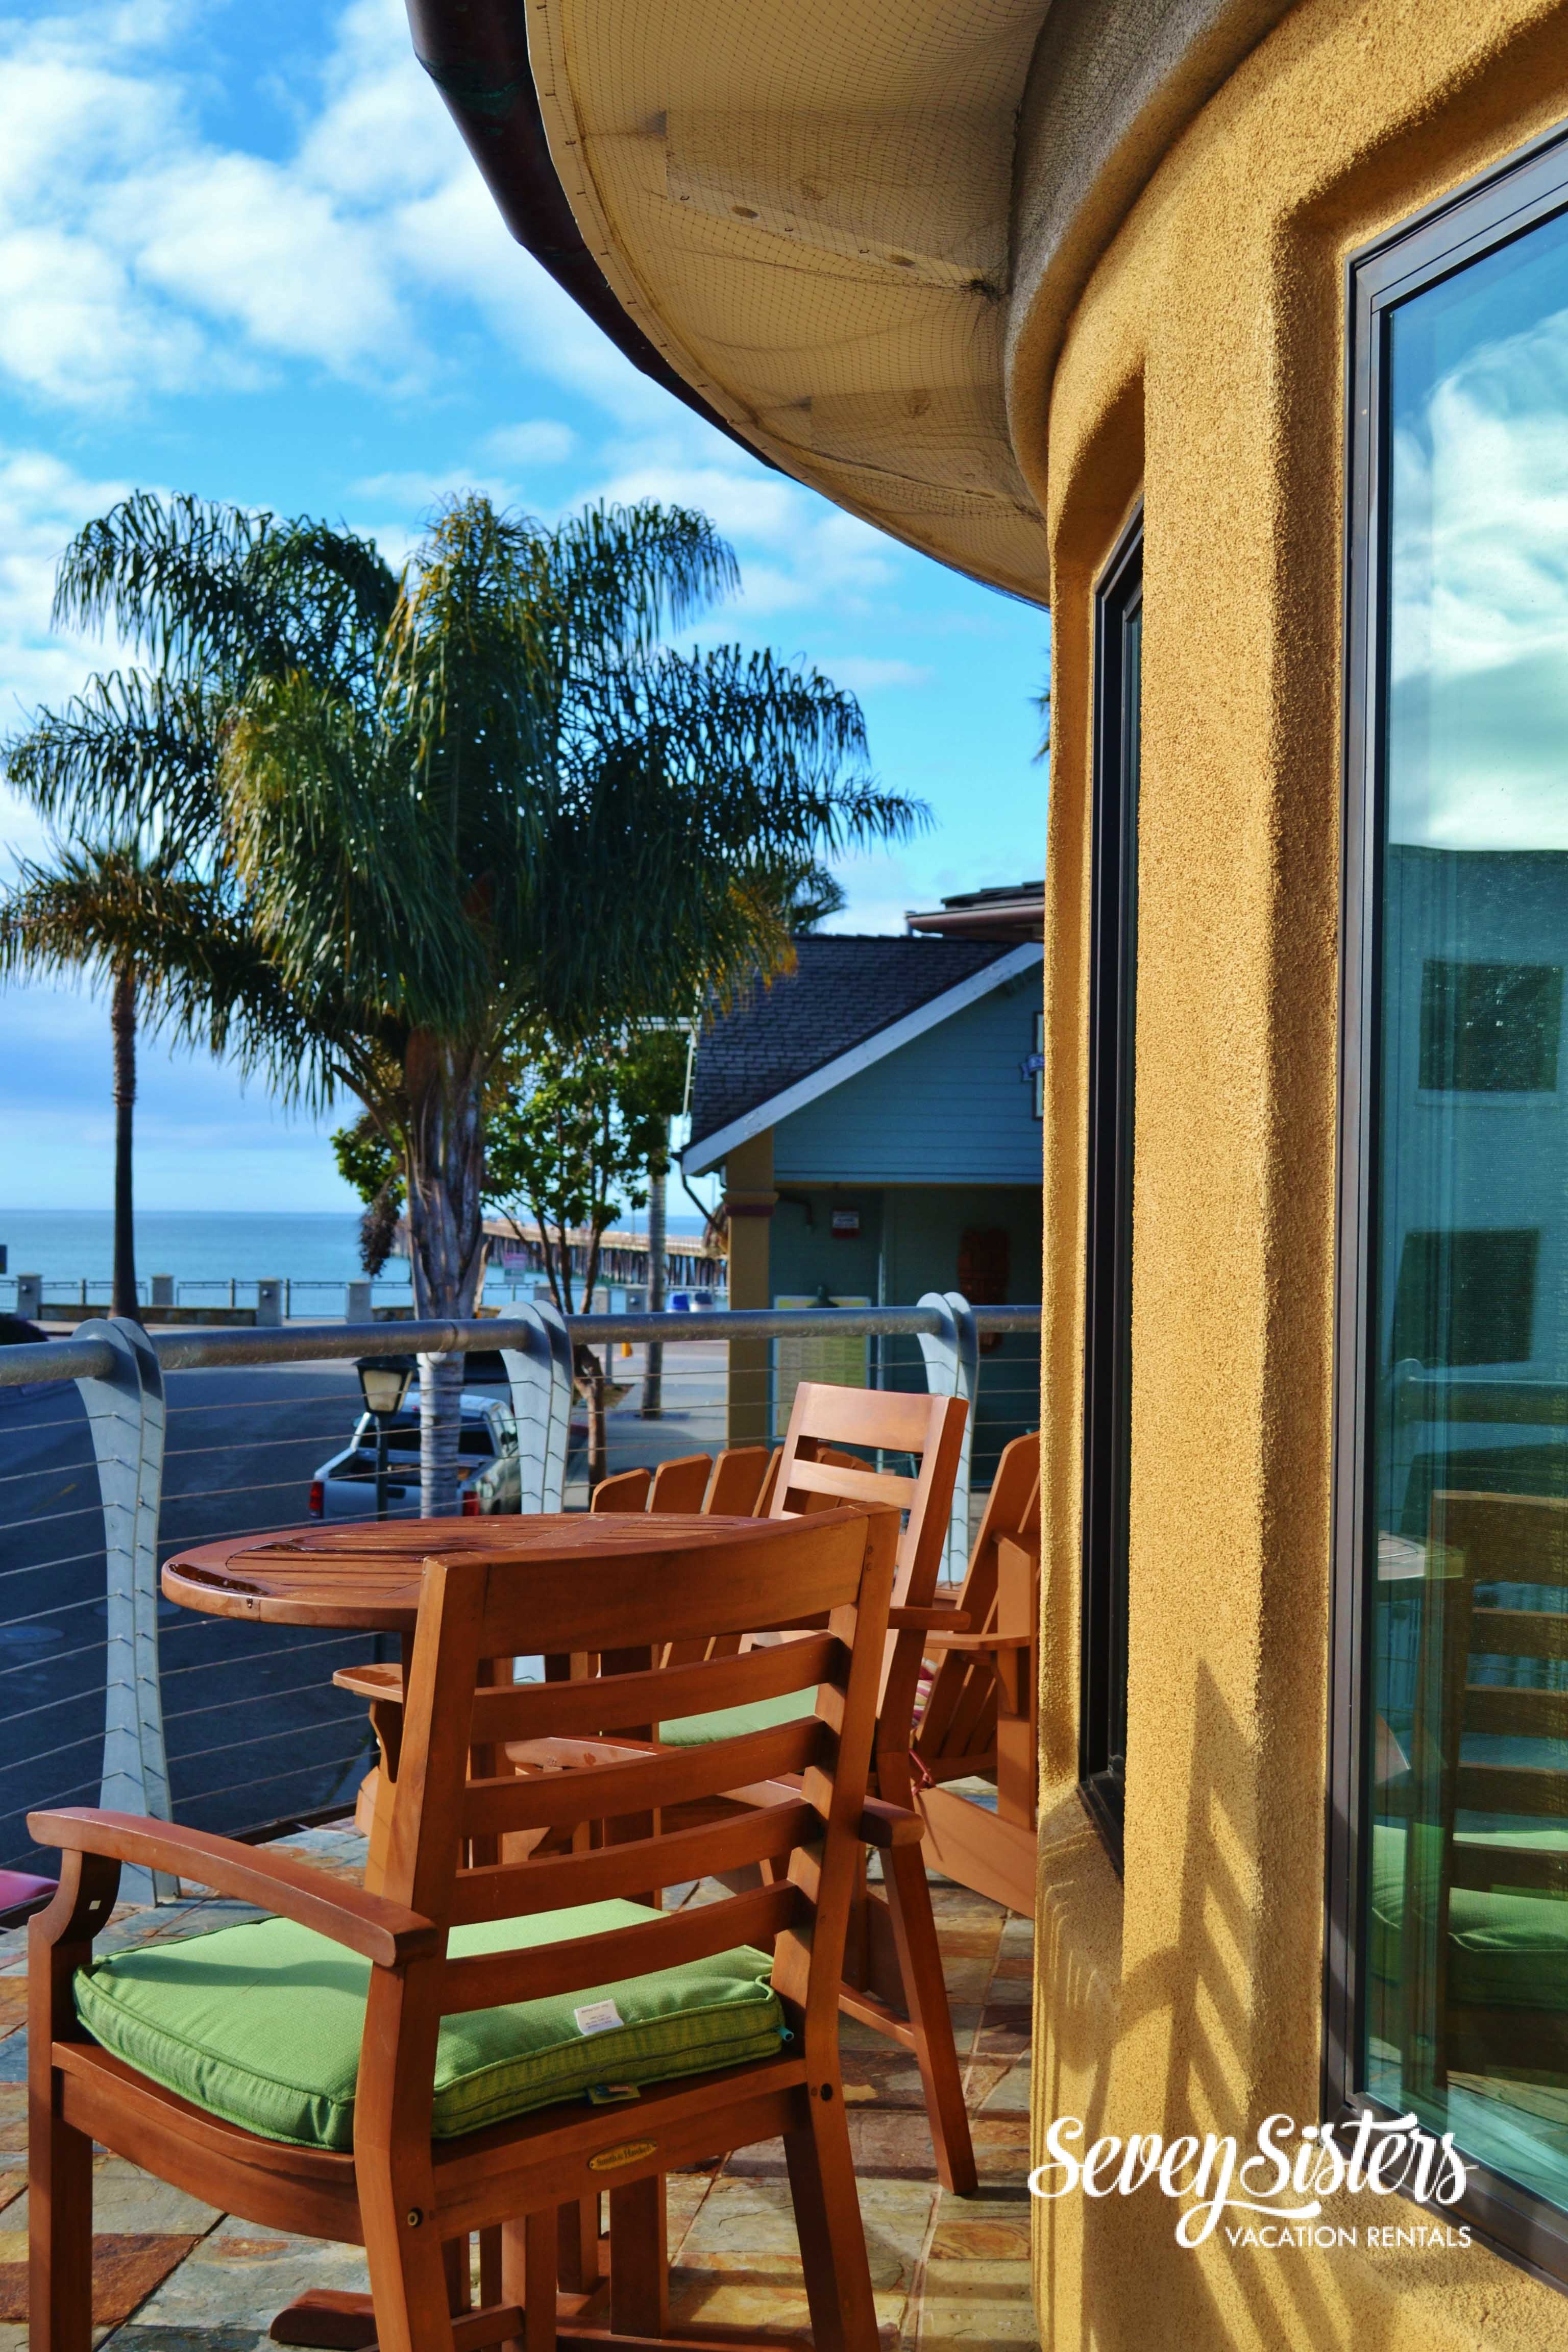 Seven Sisters Vacation Rentals image 6